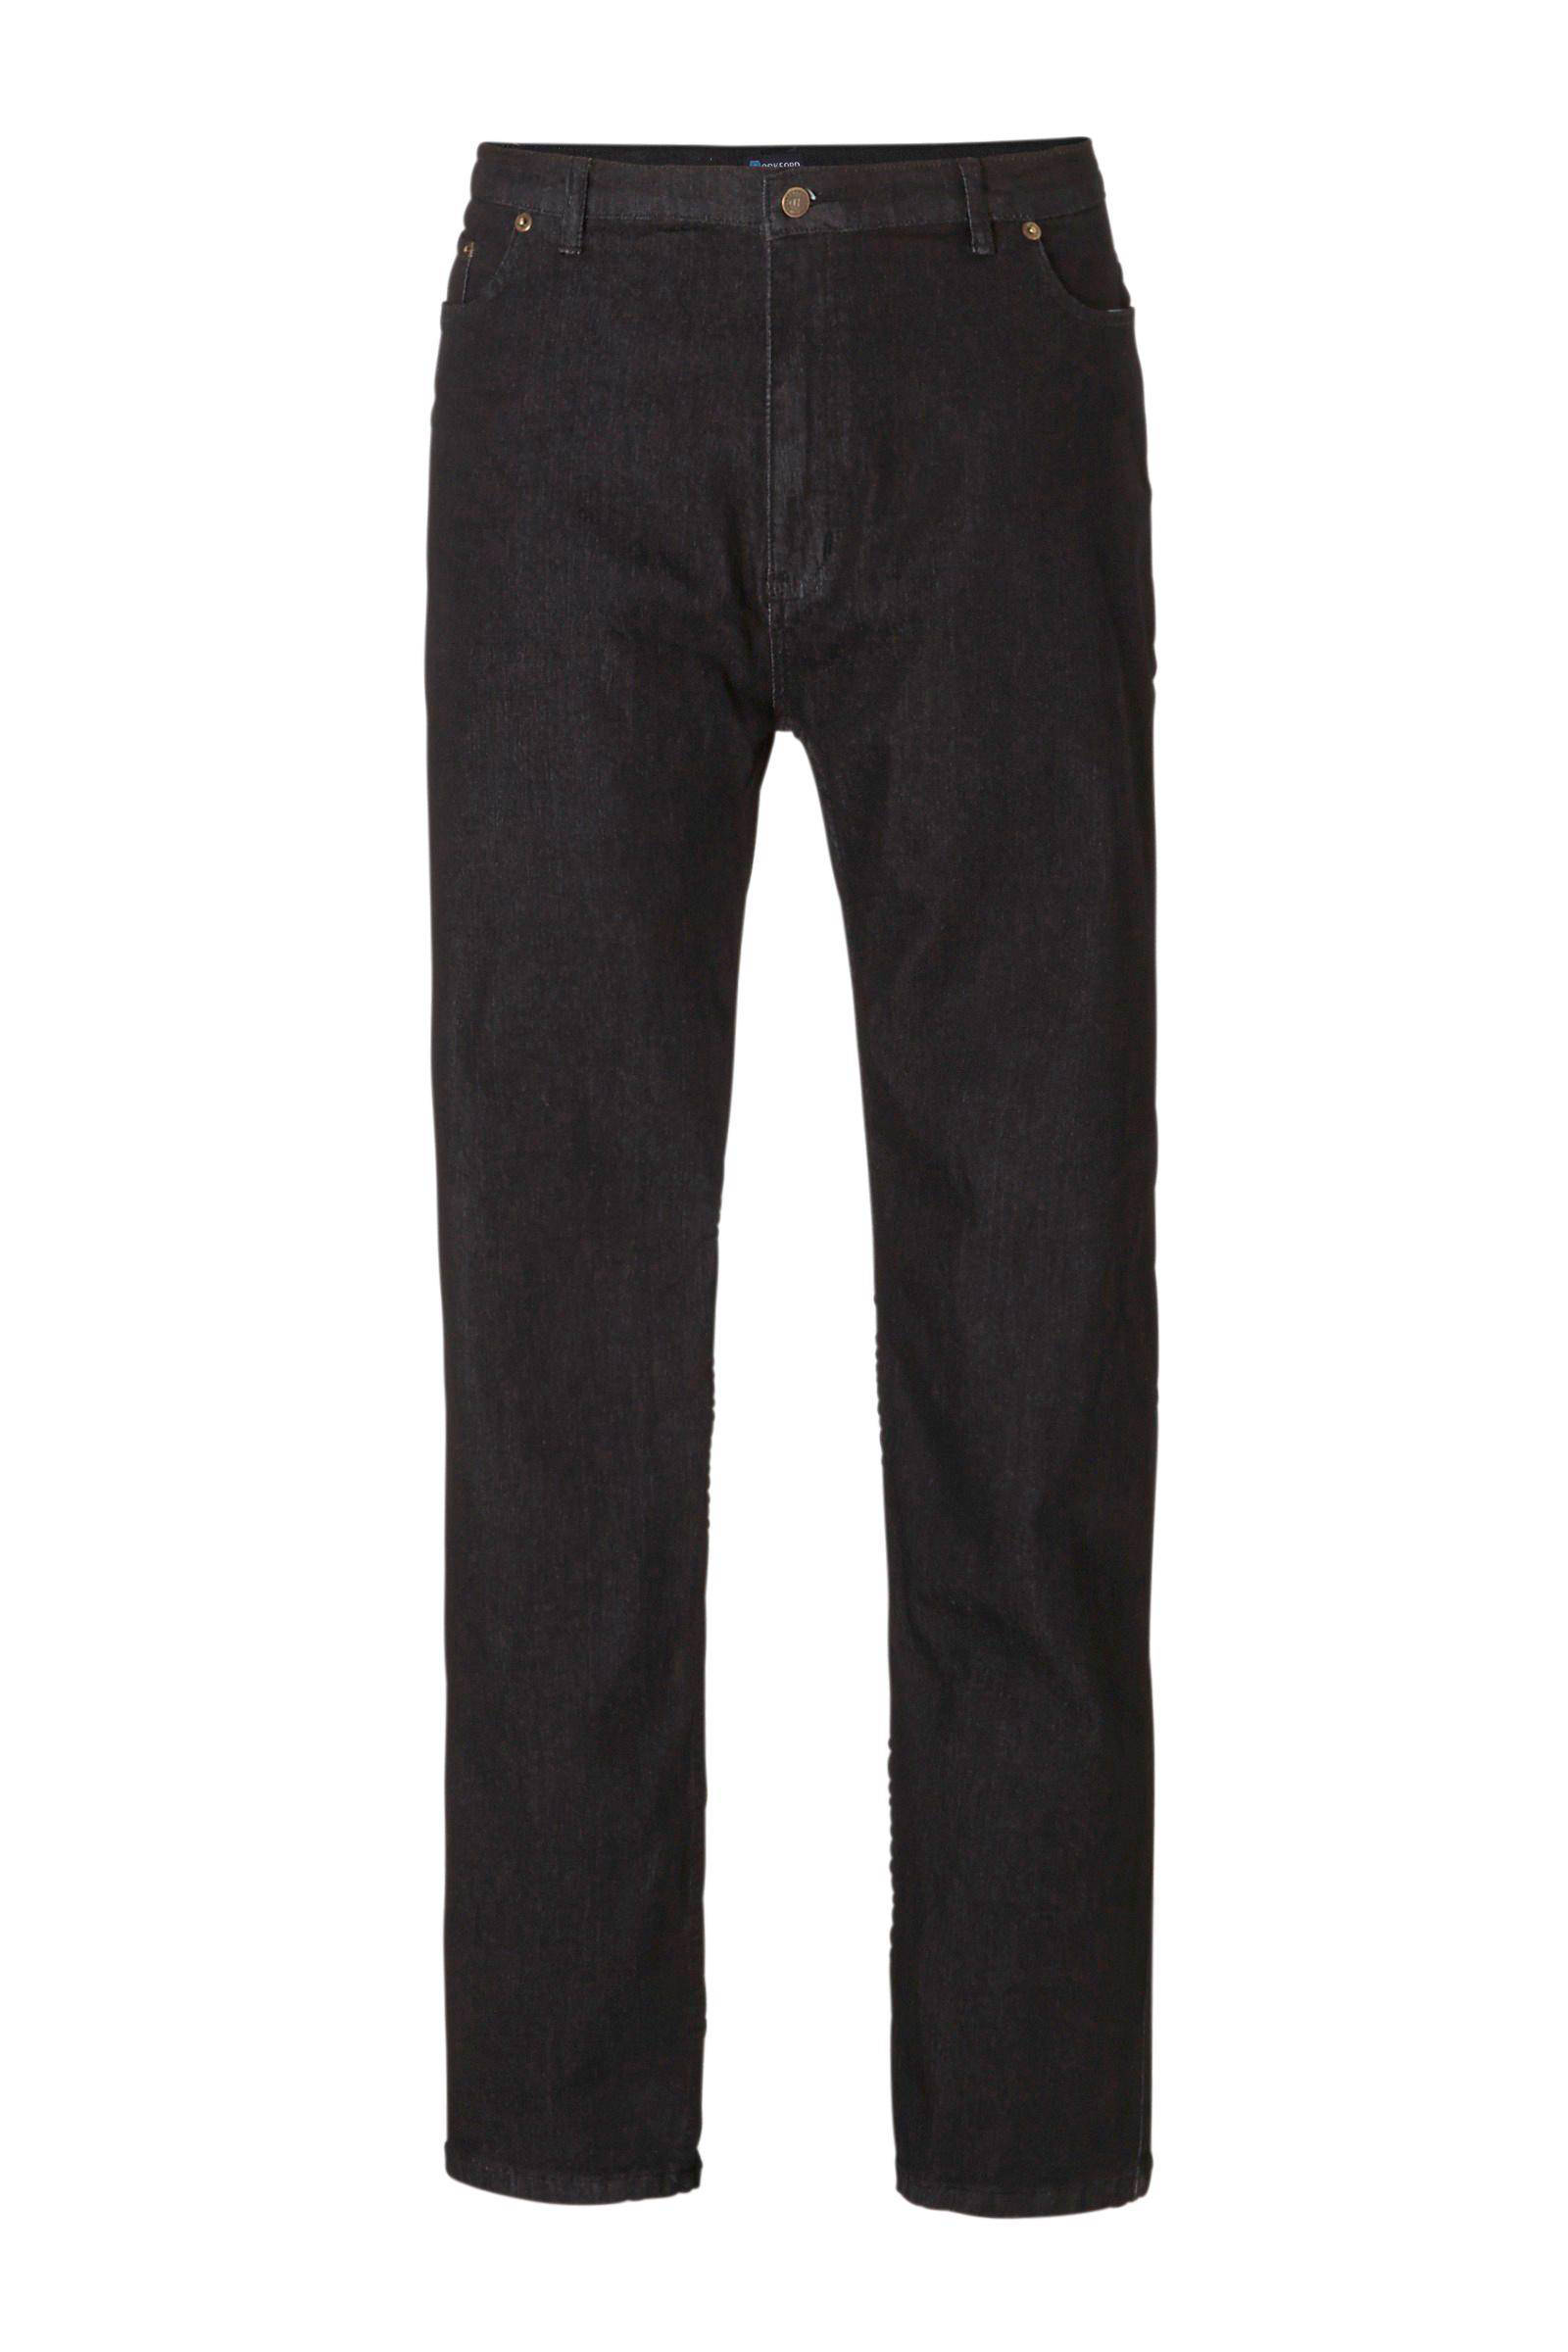 Rockford +size Carlos comfort fit jeans (heren)